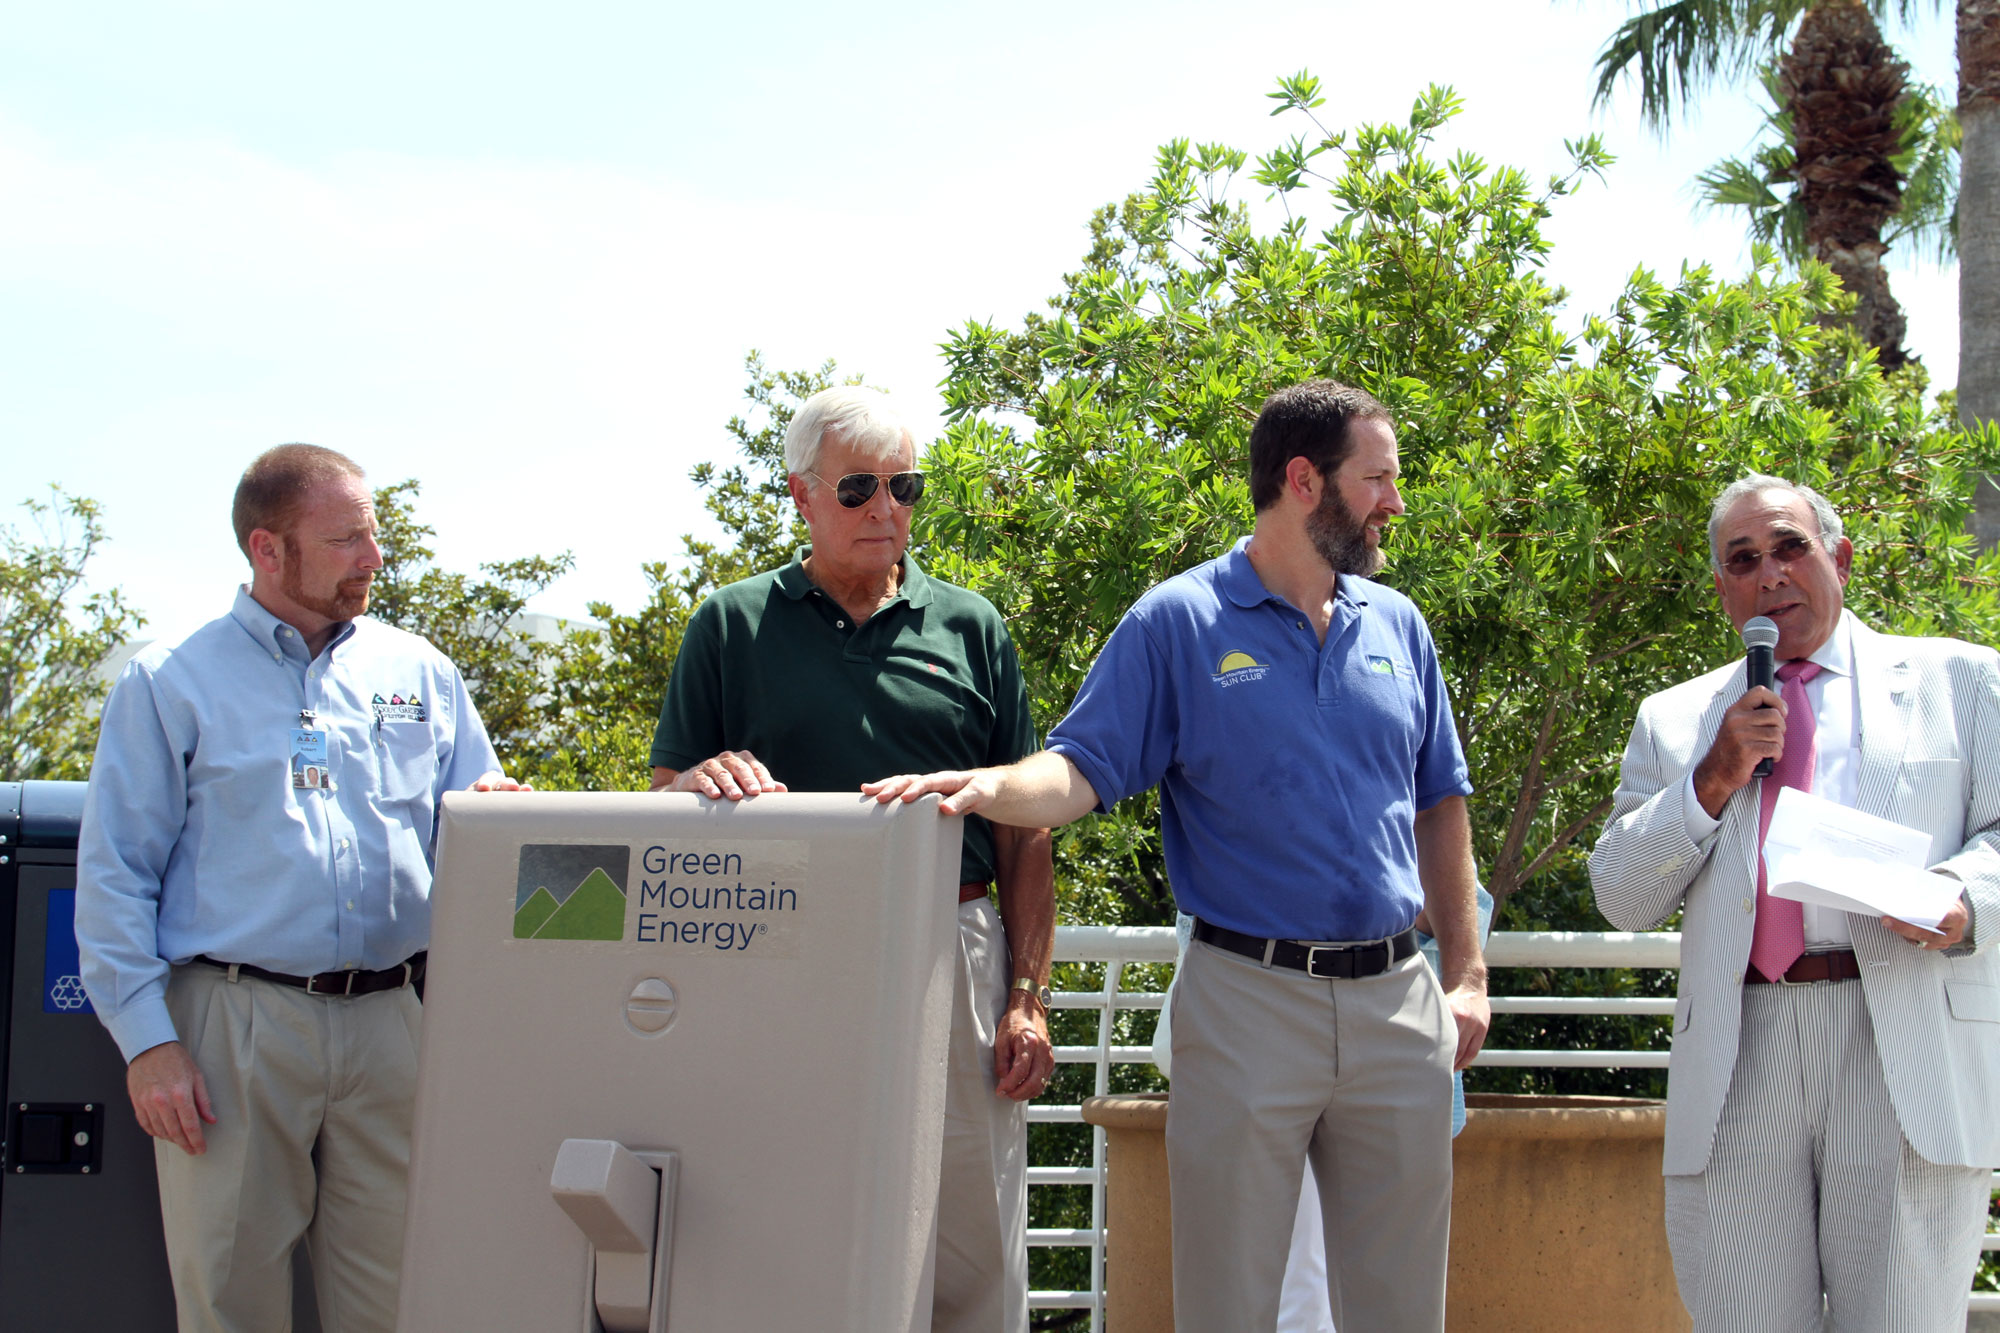 Mayor Rosen speaks about what it means to be green in Galveston